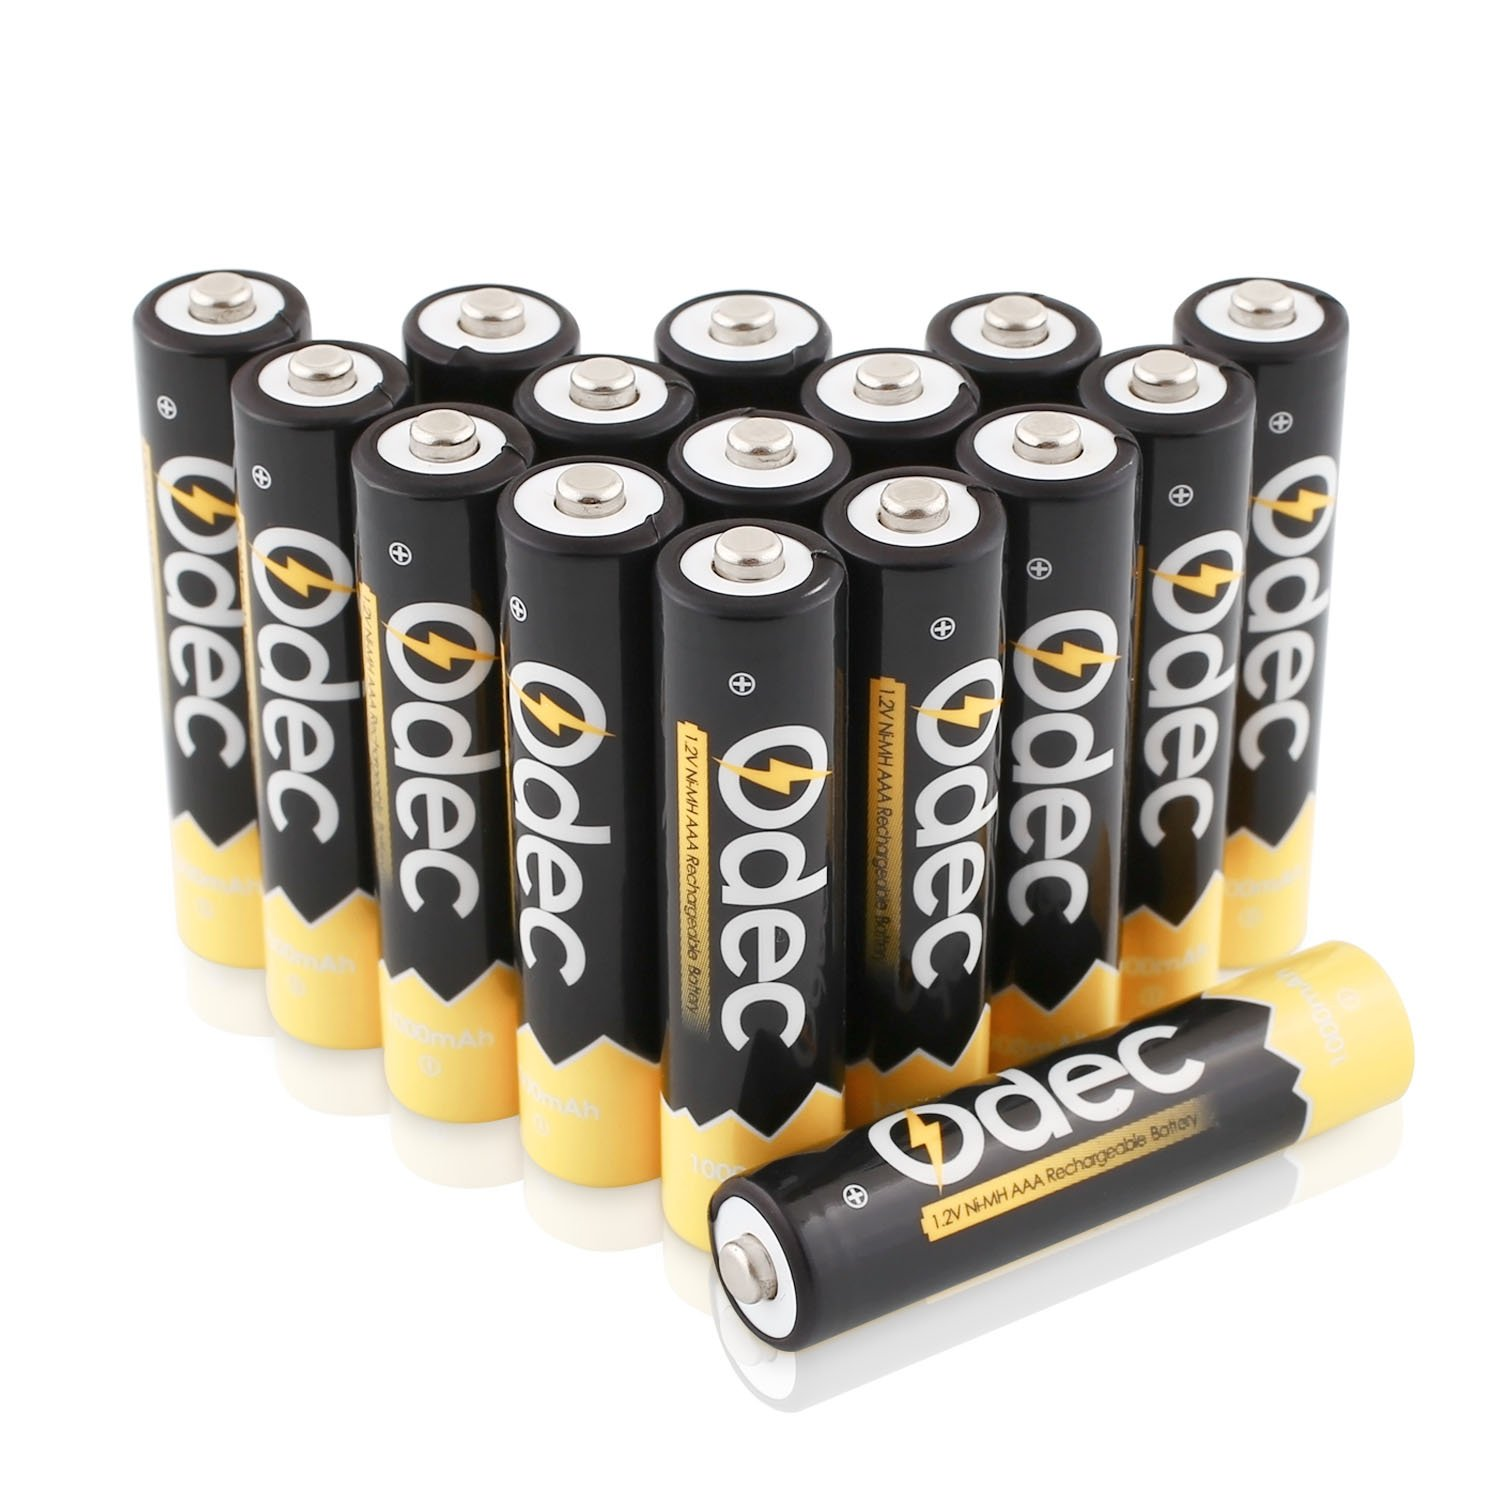 Odec AAA Battery, Rechargeable AAA Batteries High Capacity 1000mAh Ni-MH 1200 Cycles with Storage Box 16 Pack AAA Rechargeable Battery